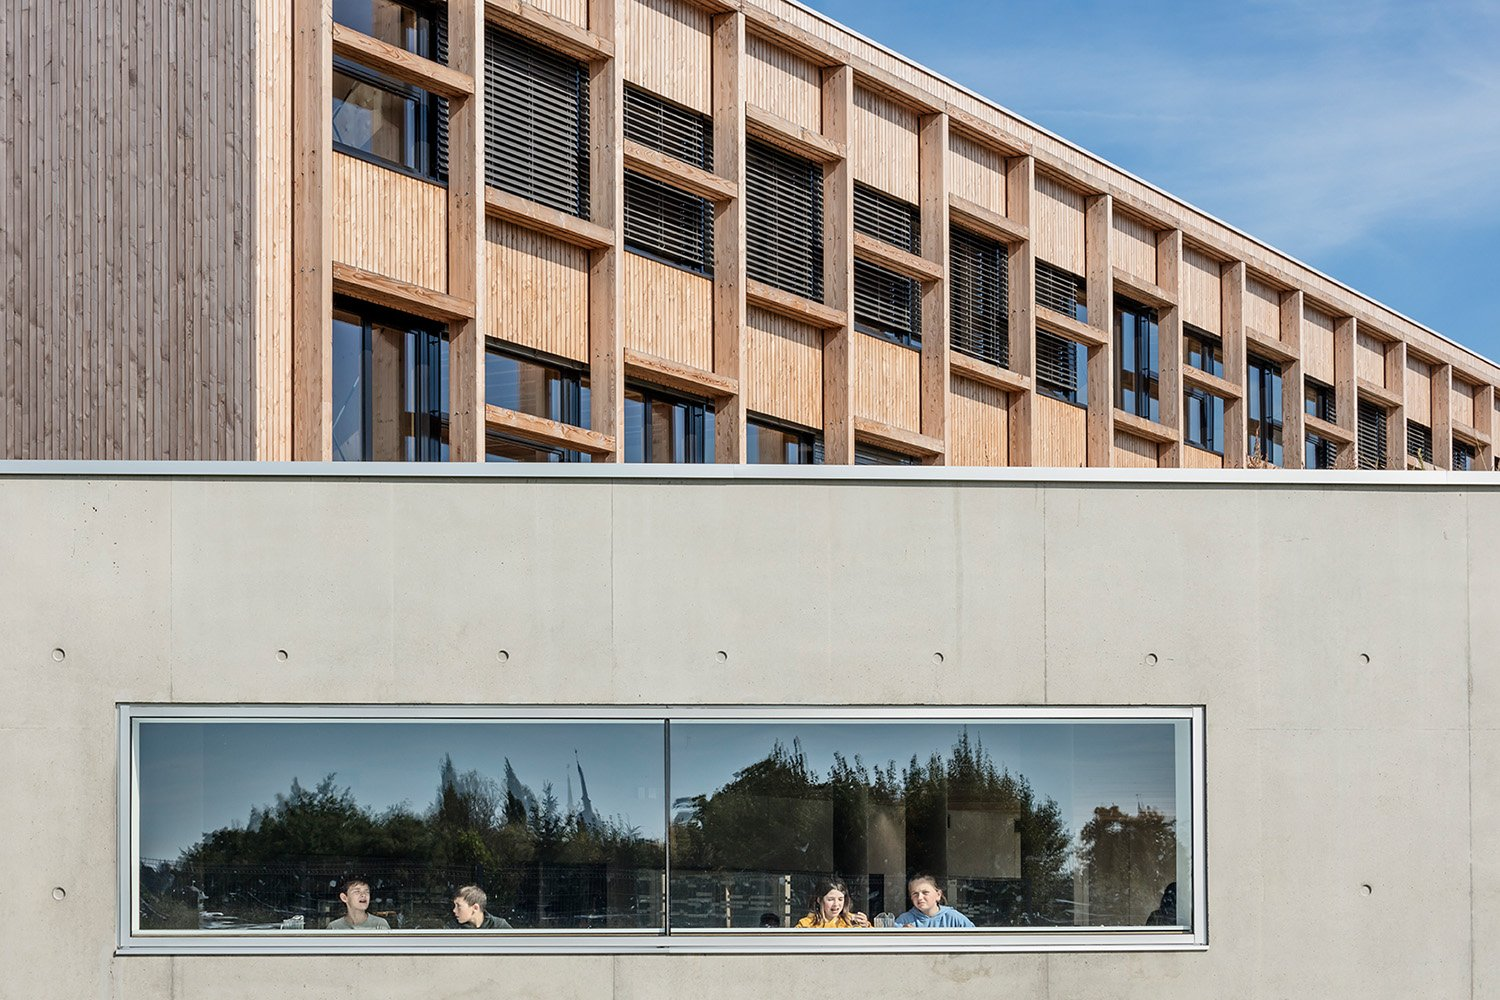 College Lamballe - groundfloor in concrete, upper floors in timber Luc Boegly